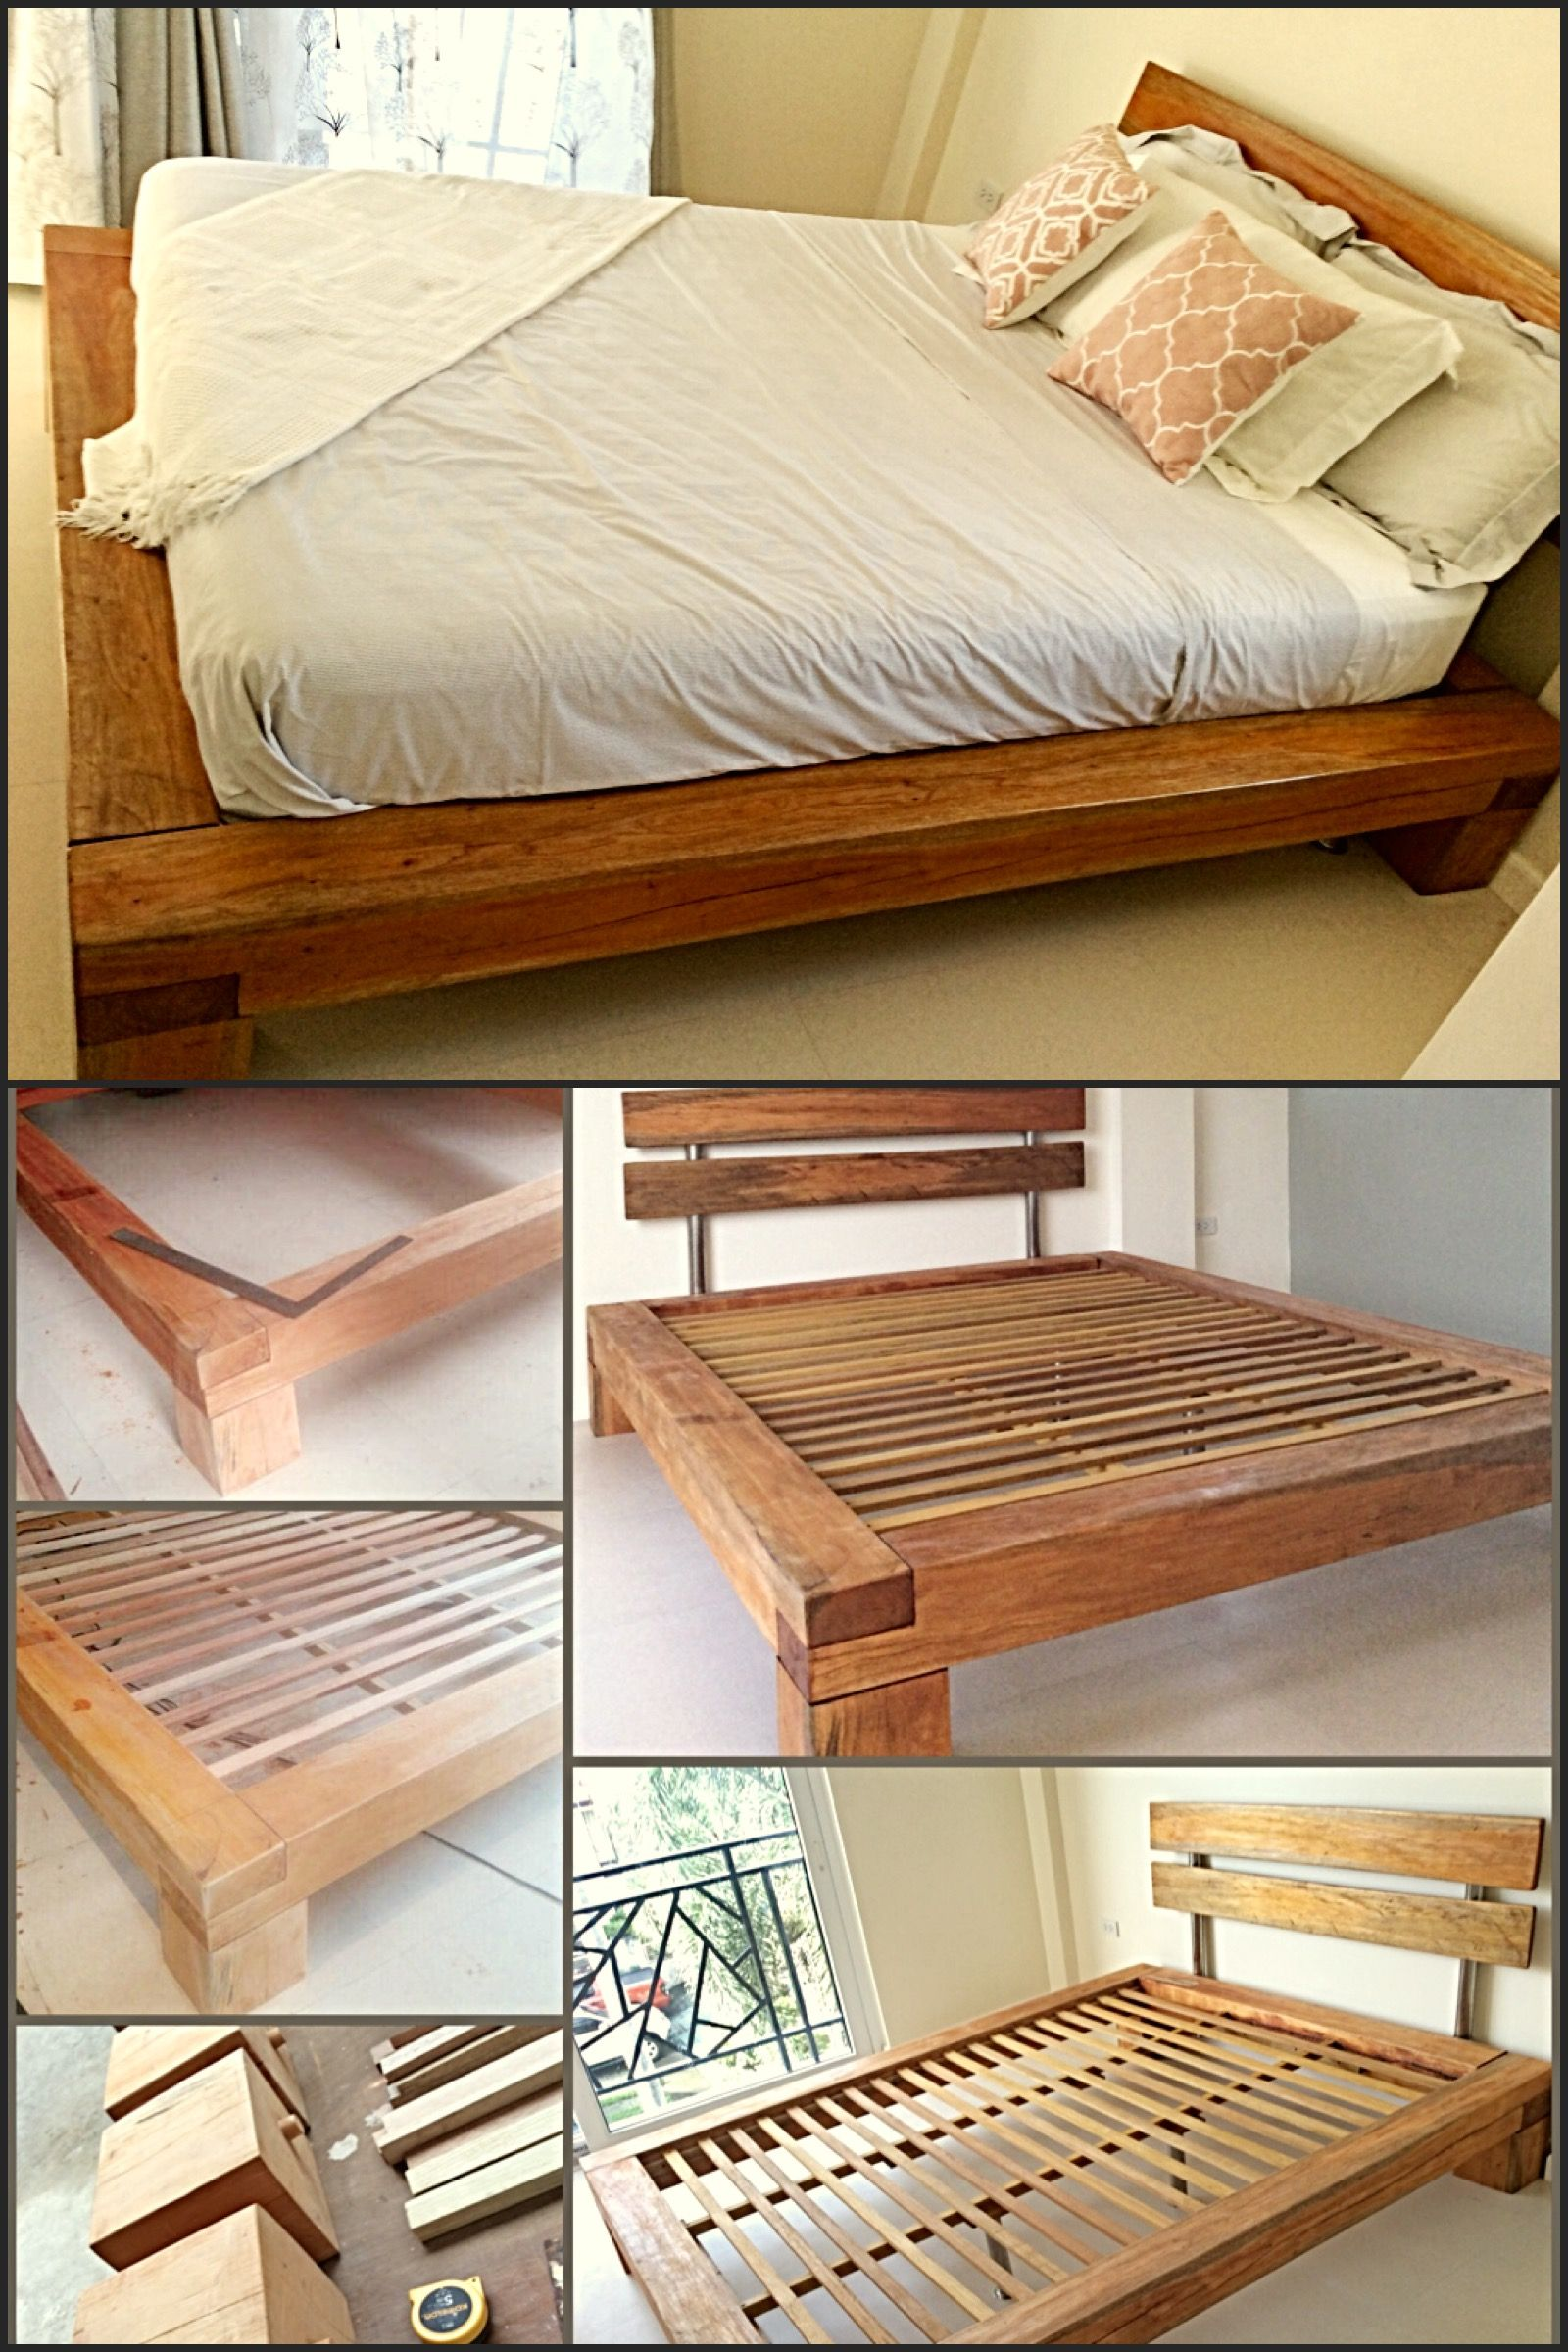 Pin By Paula Bruner On Bespoke Projects Bed Frame And Headboard